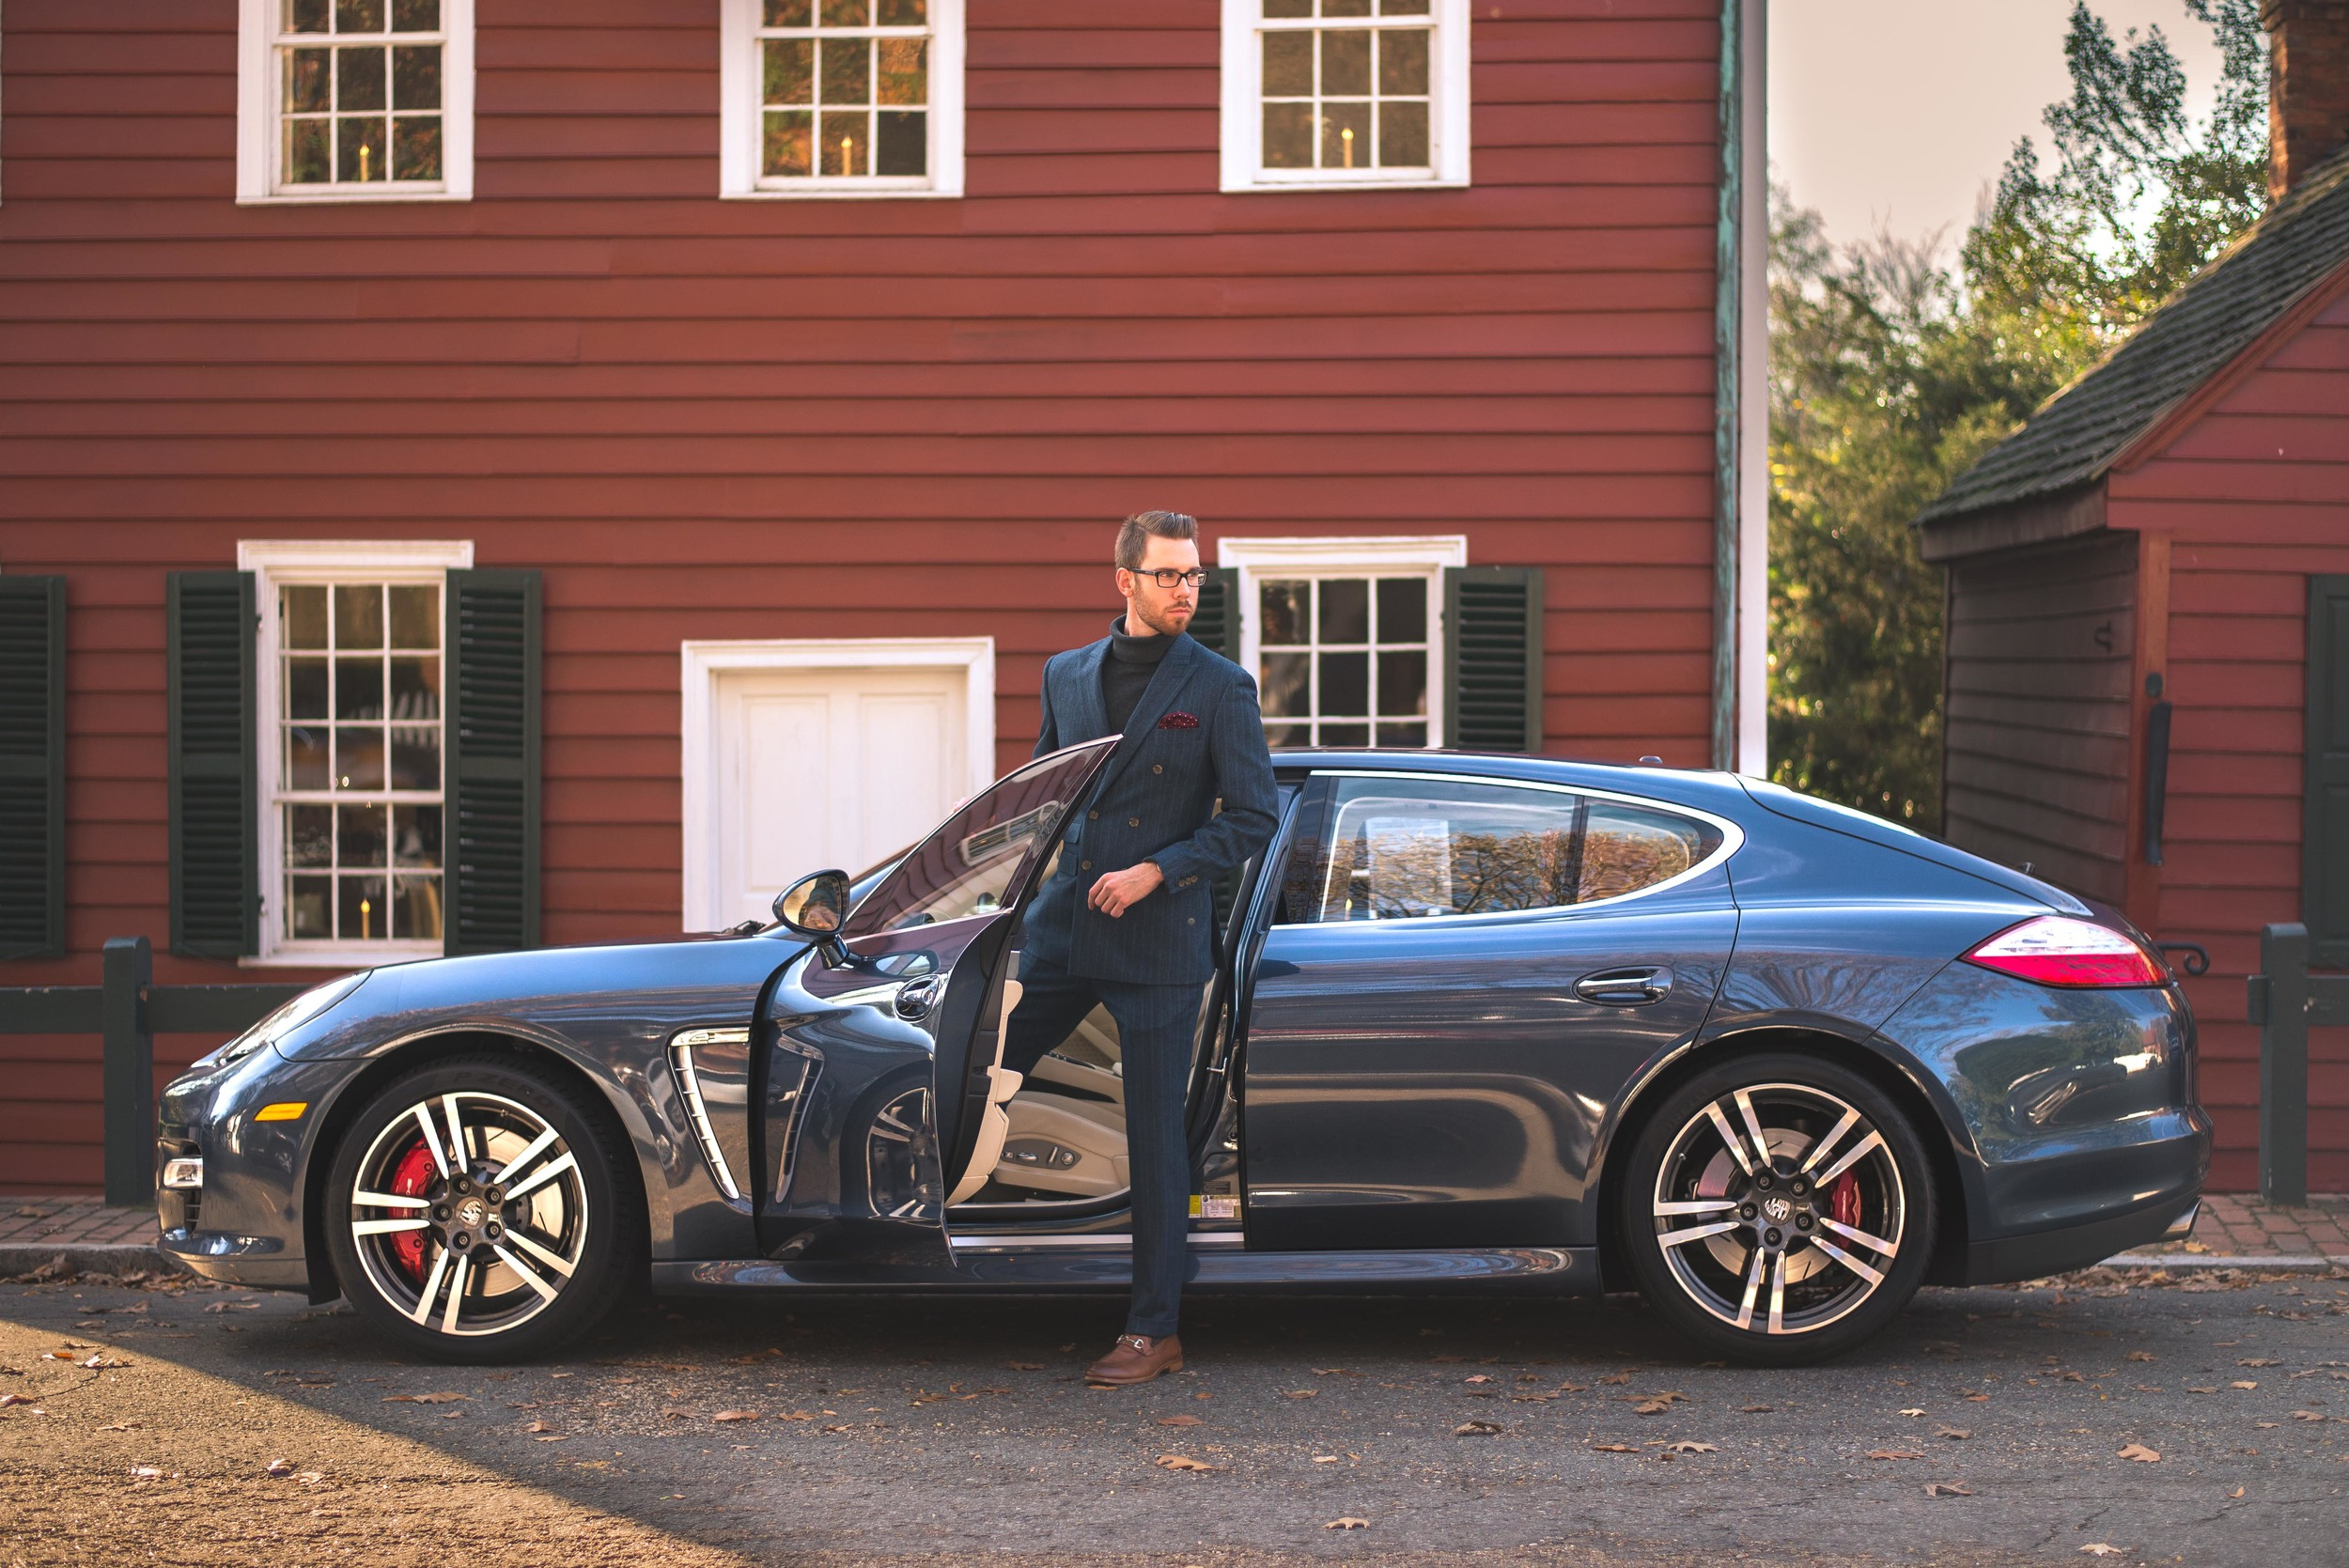 Suit: Indochino, Shoes: Johnston & Murphy, Glasses: Burberry, Sweater: Ralph Lauren, Pocket Square: Bows-n-ties.com,Car: Porsche Panamera, Photo by Alec Hutchins Photography, Hair styled by: Carlos Carvana; Owner The Oval Office.